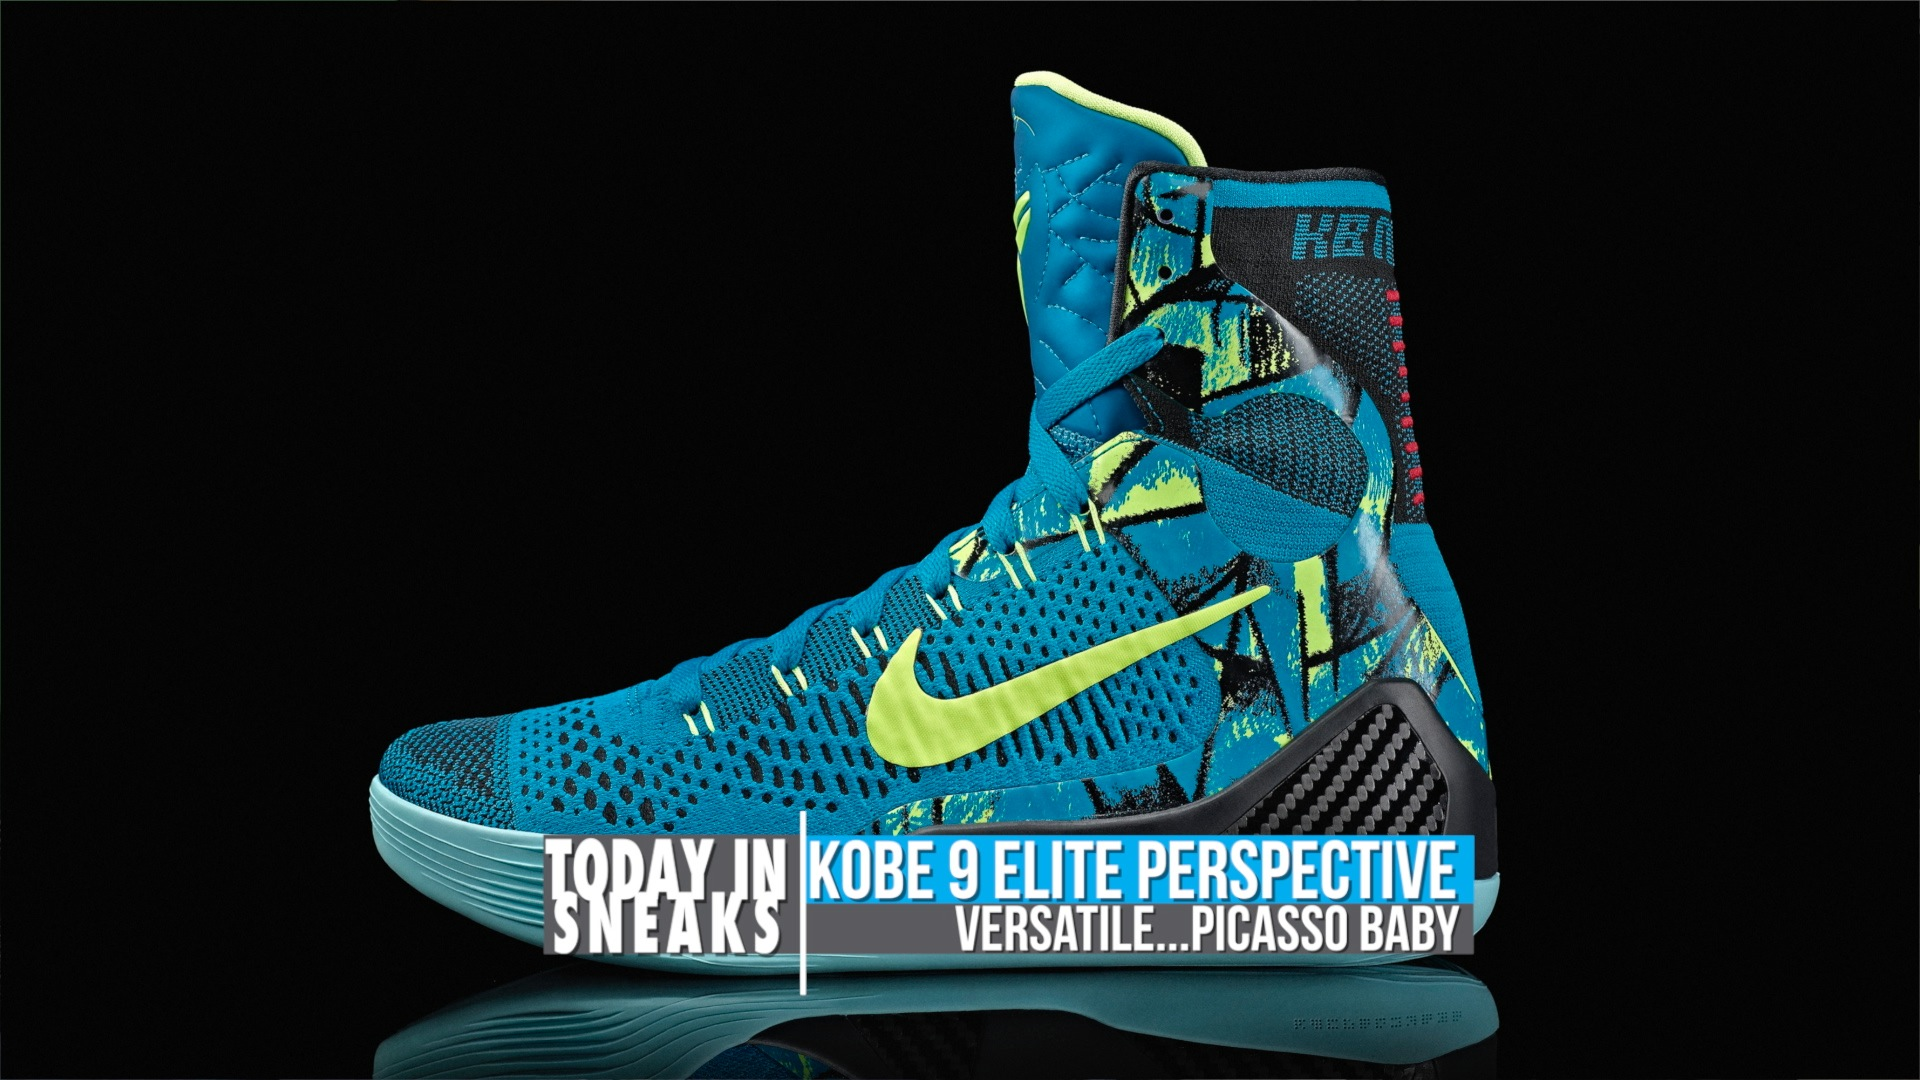 Kobe 9 - Top 5 Coolest Shoes of 2013-2014